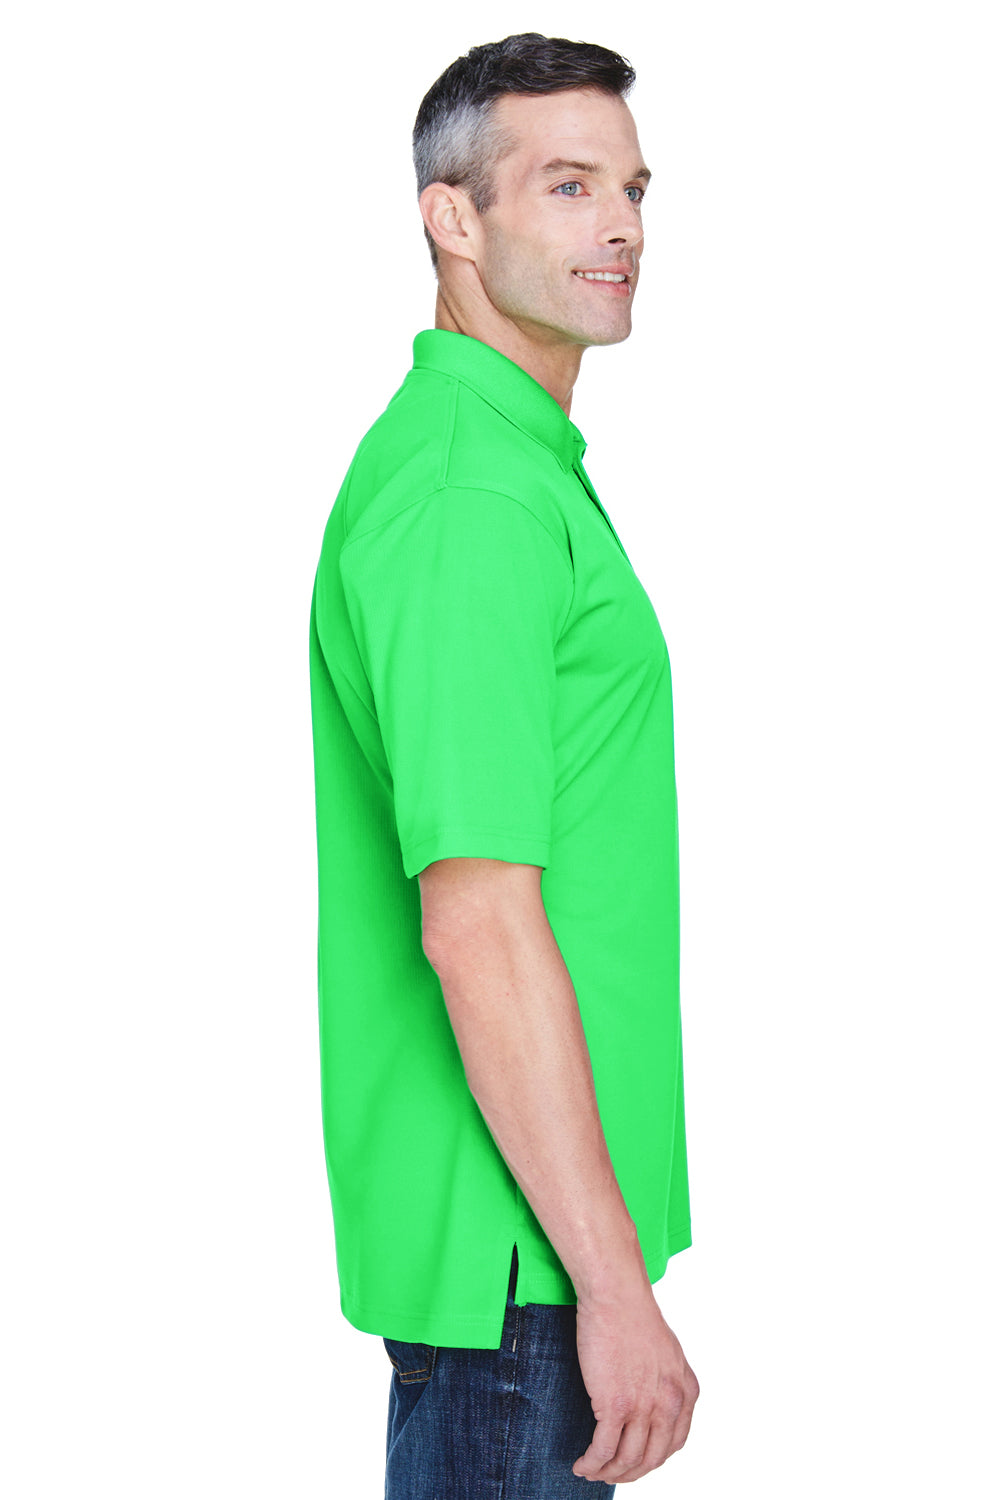 UltraClub 8445 Mens Cool & Dry Performance Moisture Wicking Short Sleeve Polo Shirt Cool Green Side